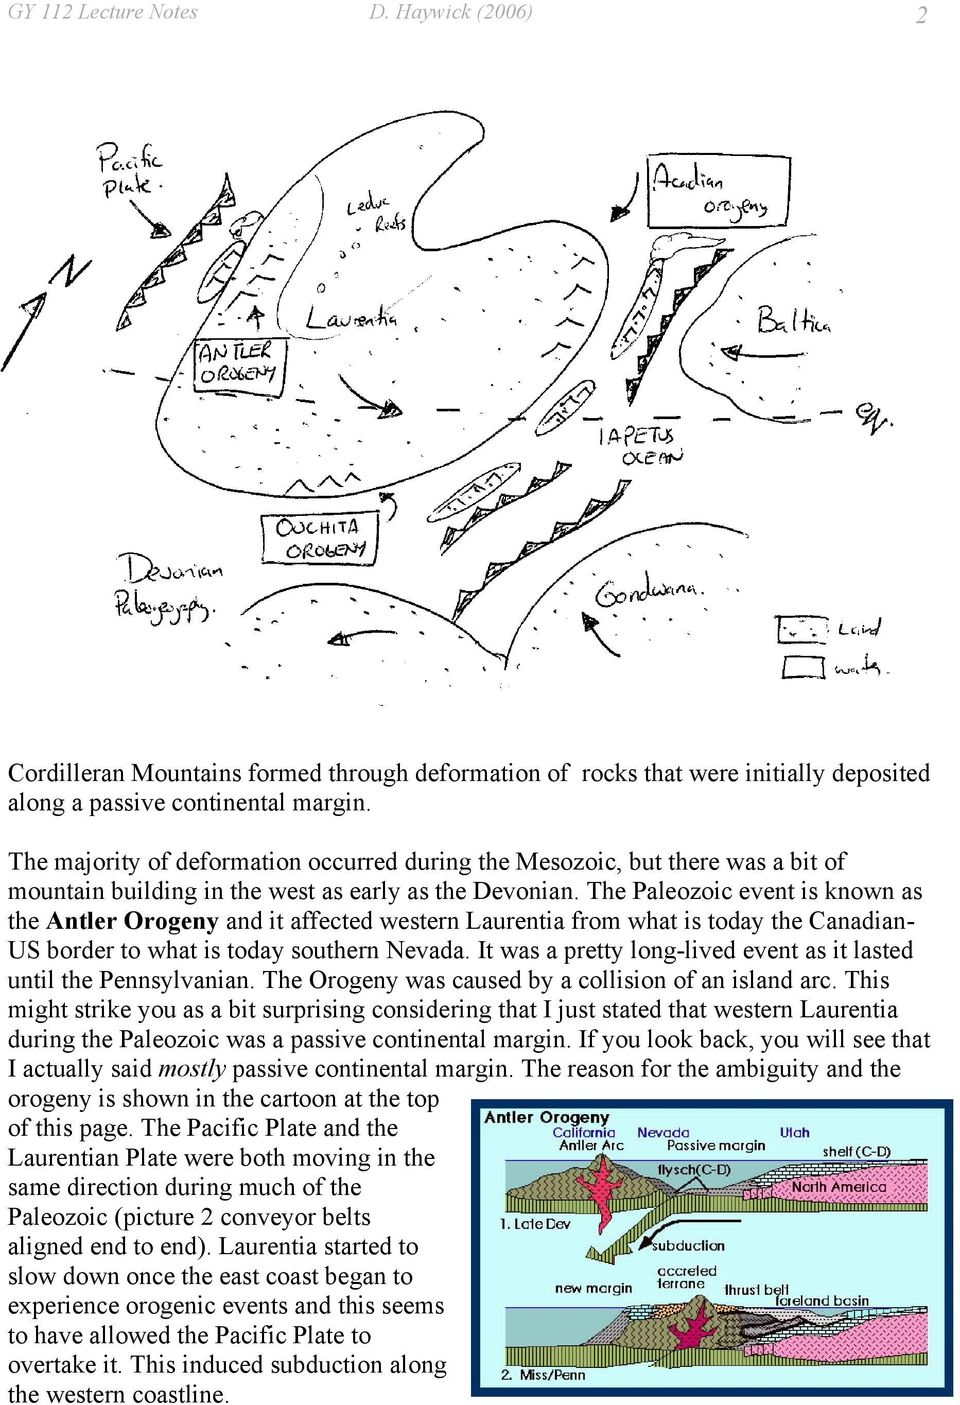 The Paleozoic event is known as the Antler Orogeny and it affected western Laurentia from what is today the Canadian- US border to what is today southern Nevada.